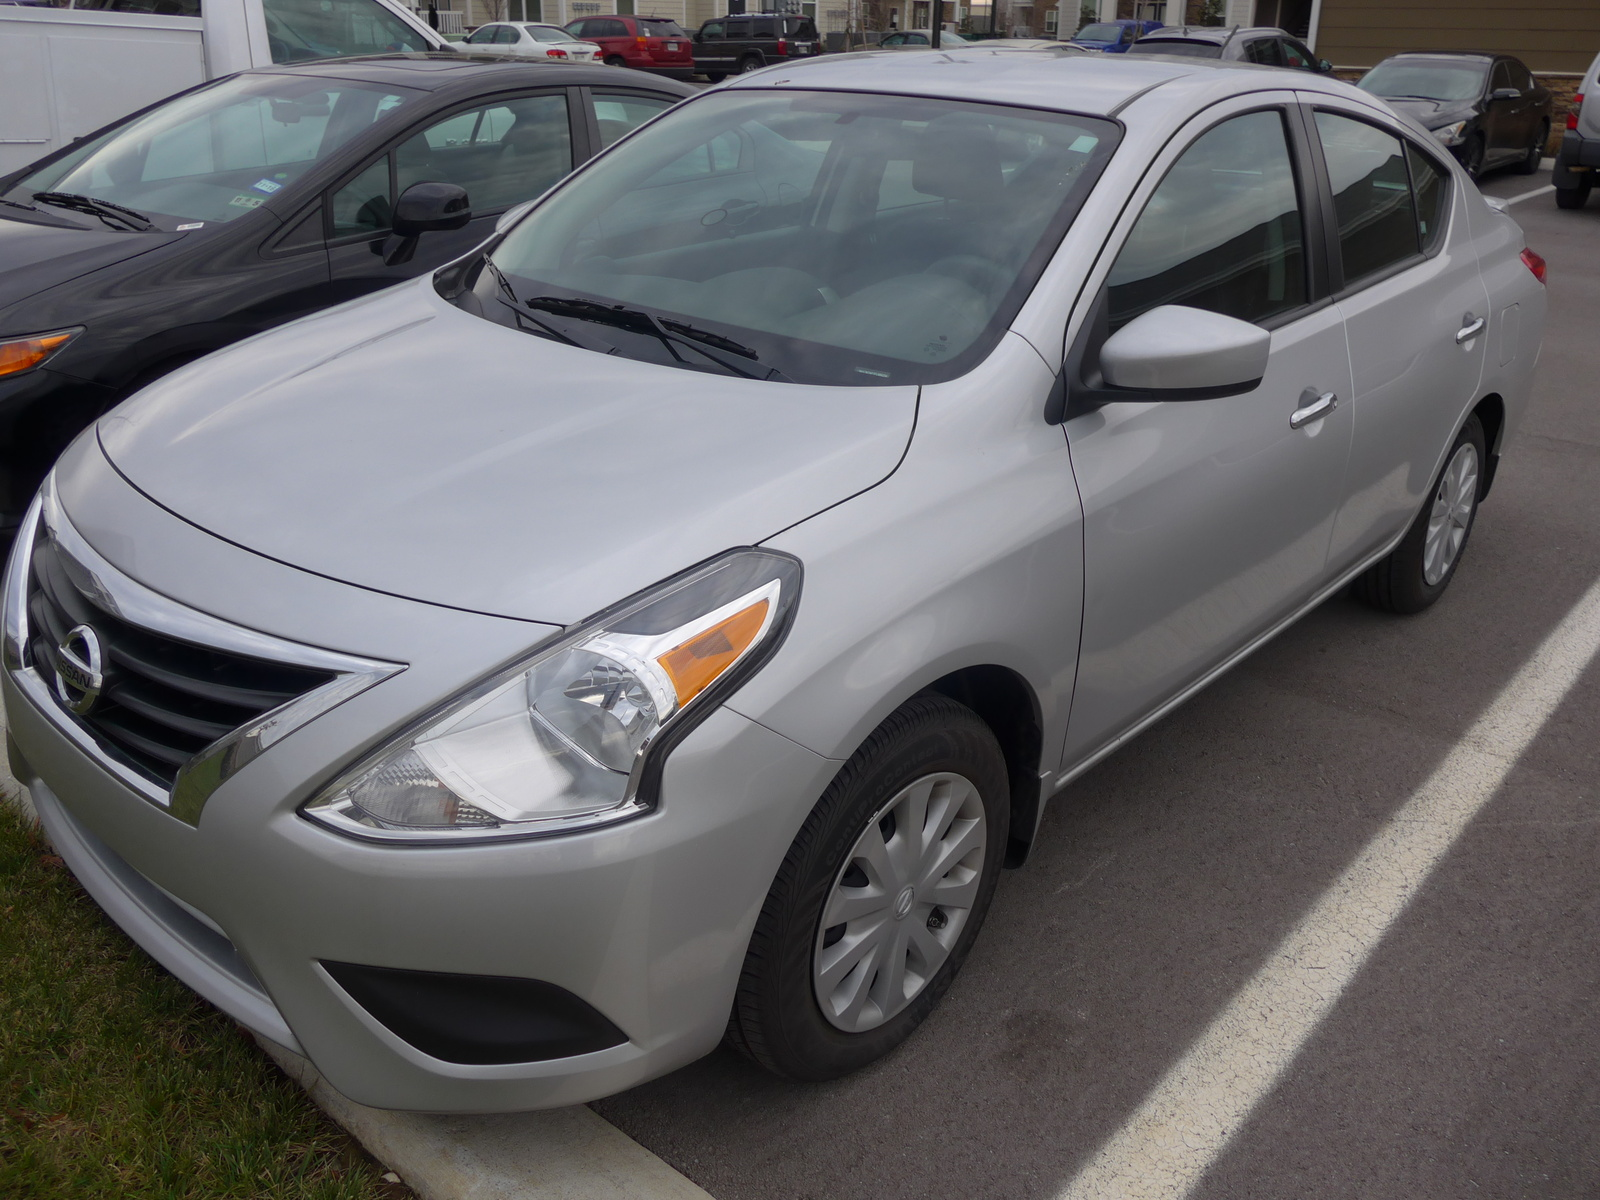 New 2015 2016 Nissan Versa For Sale Cargurus